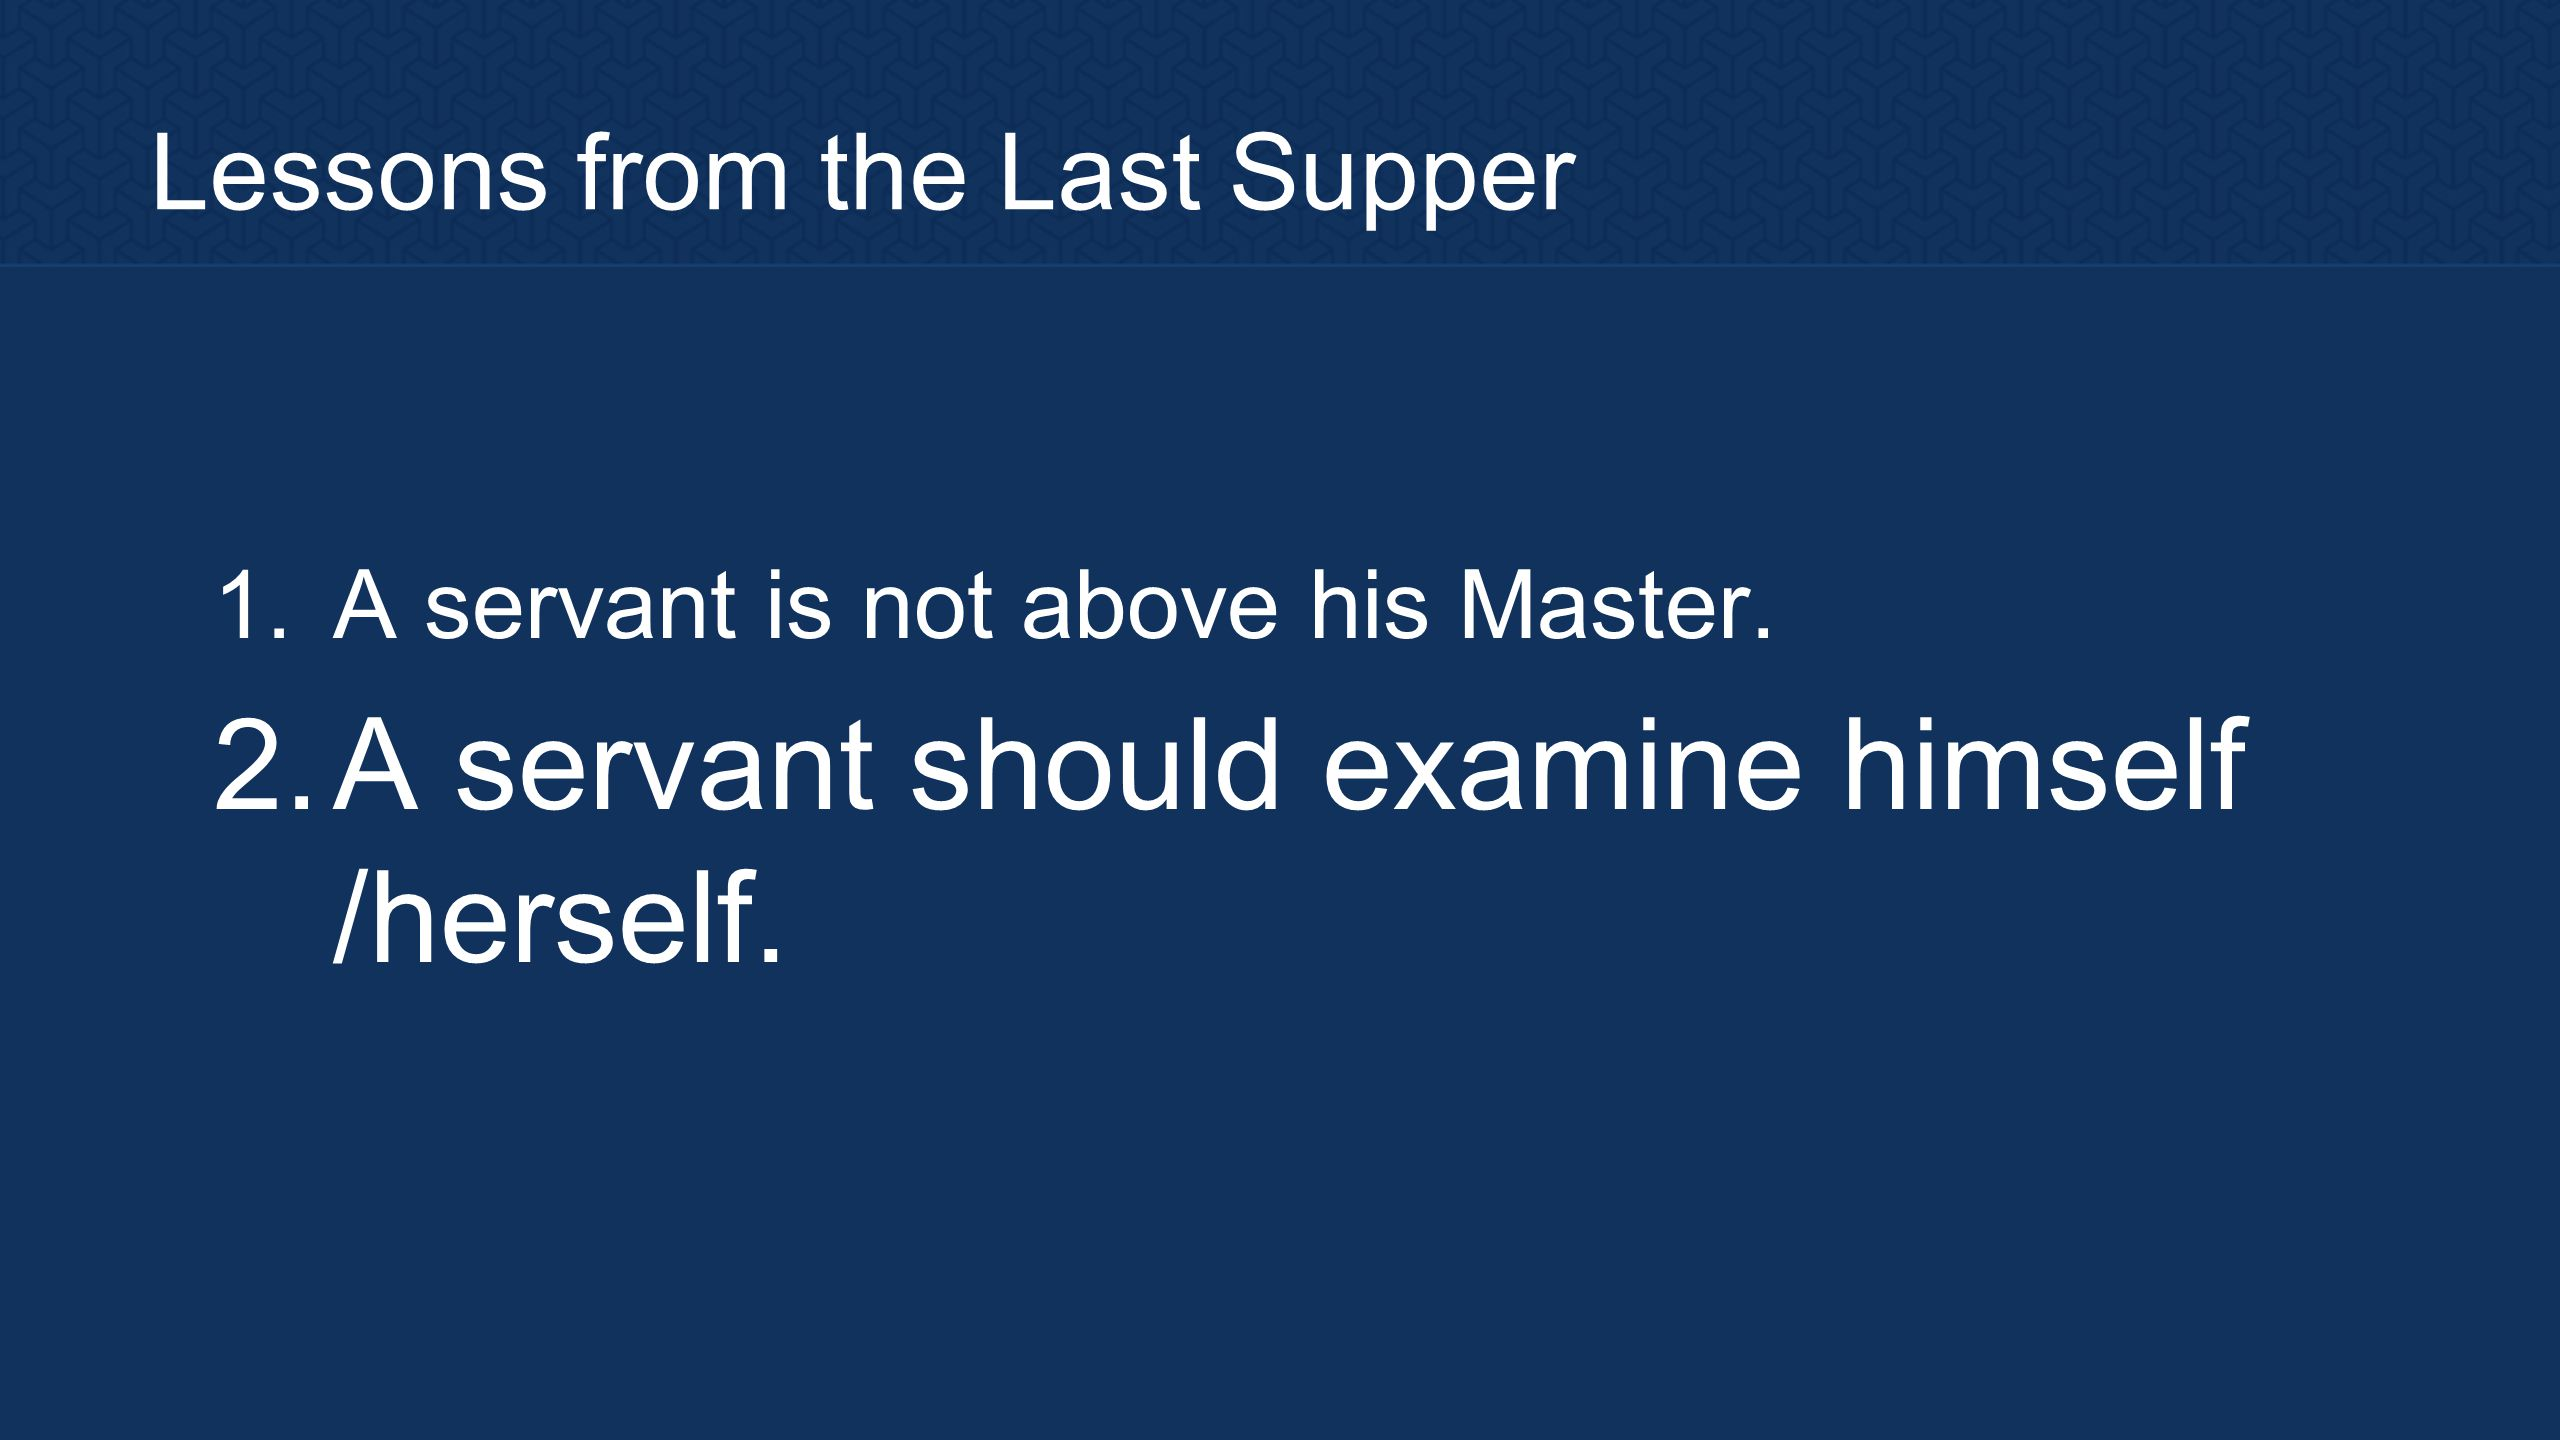 Lessons from the Last Supper 1. A servant is not above his Master.